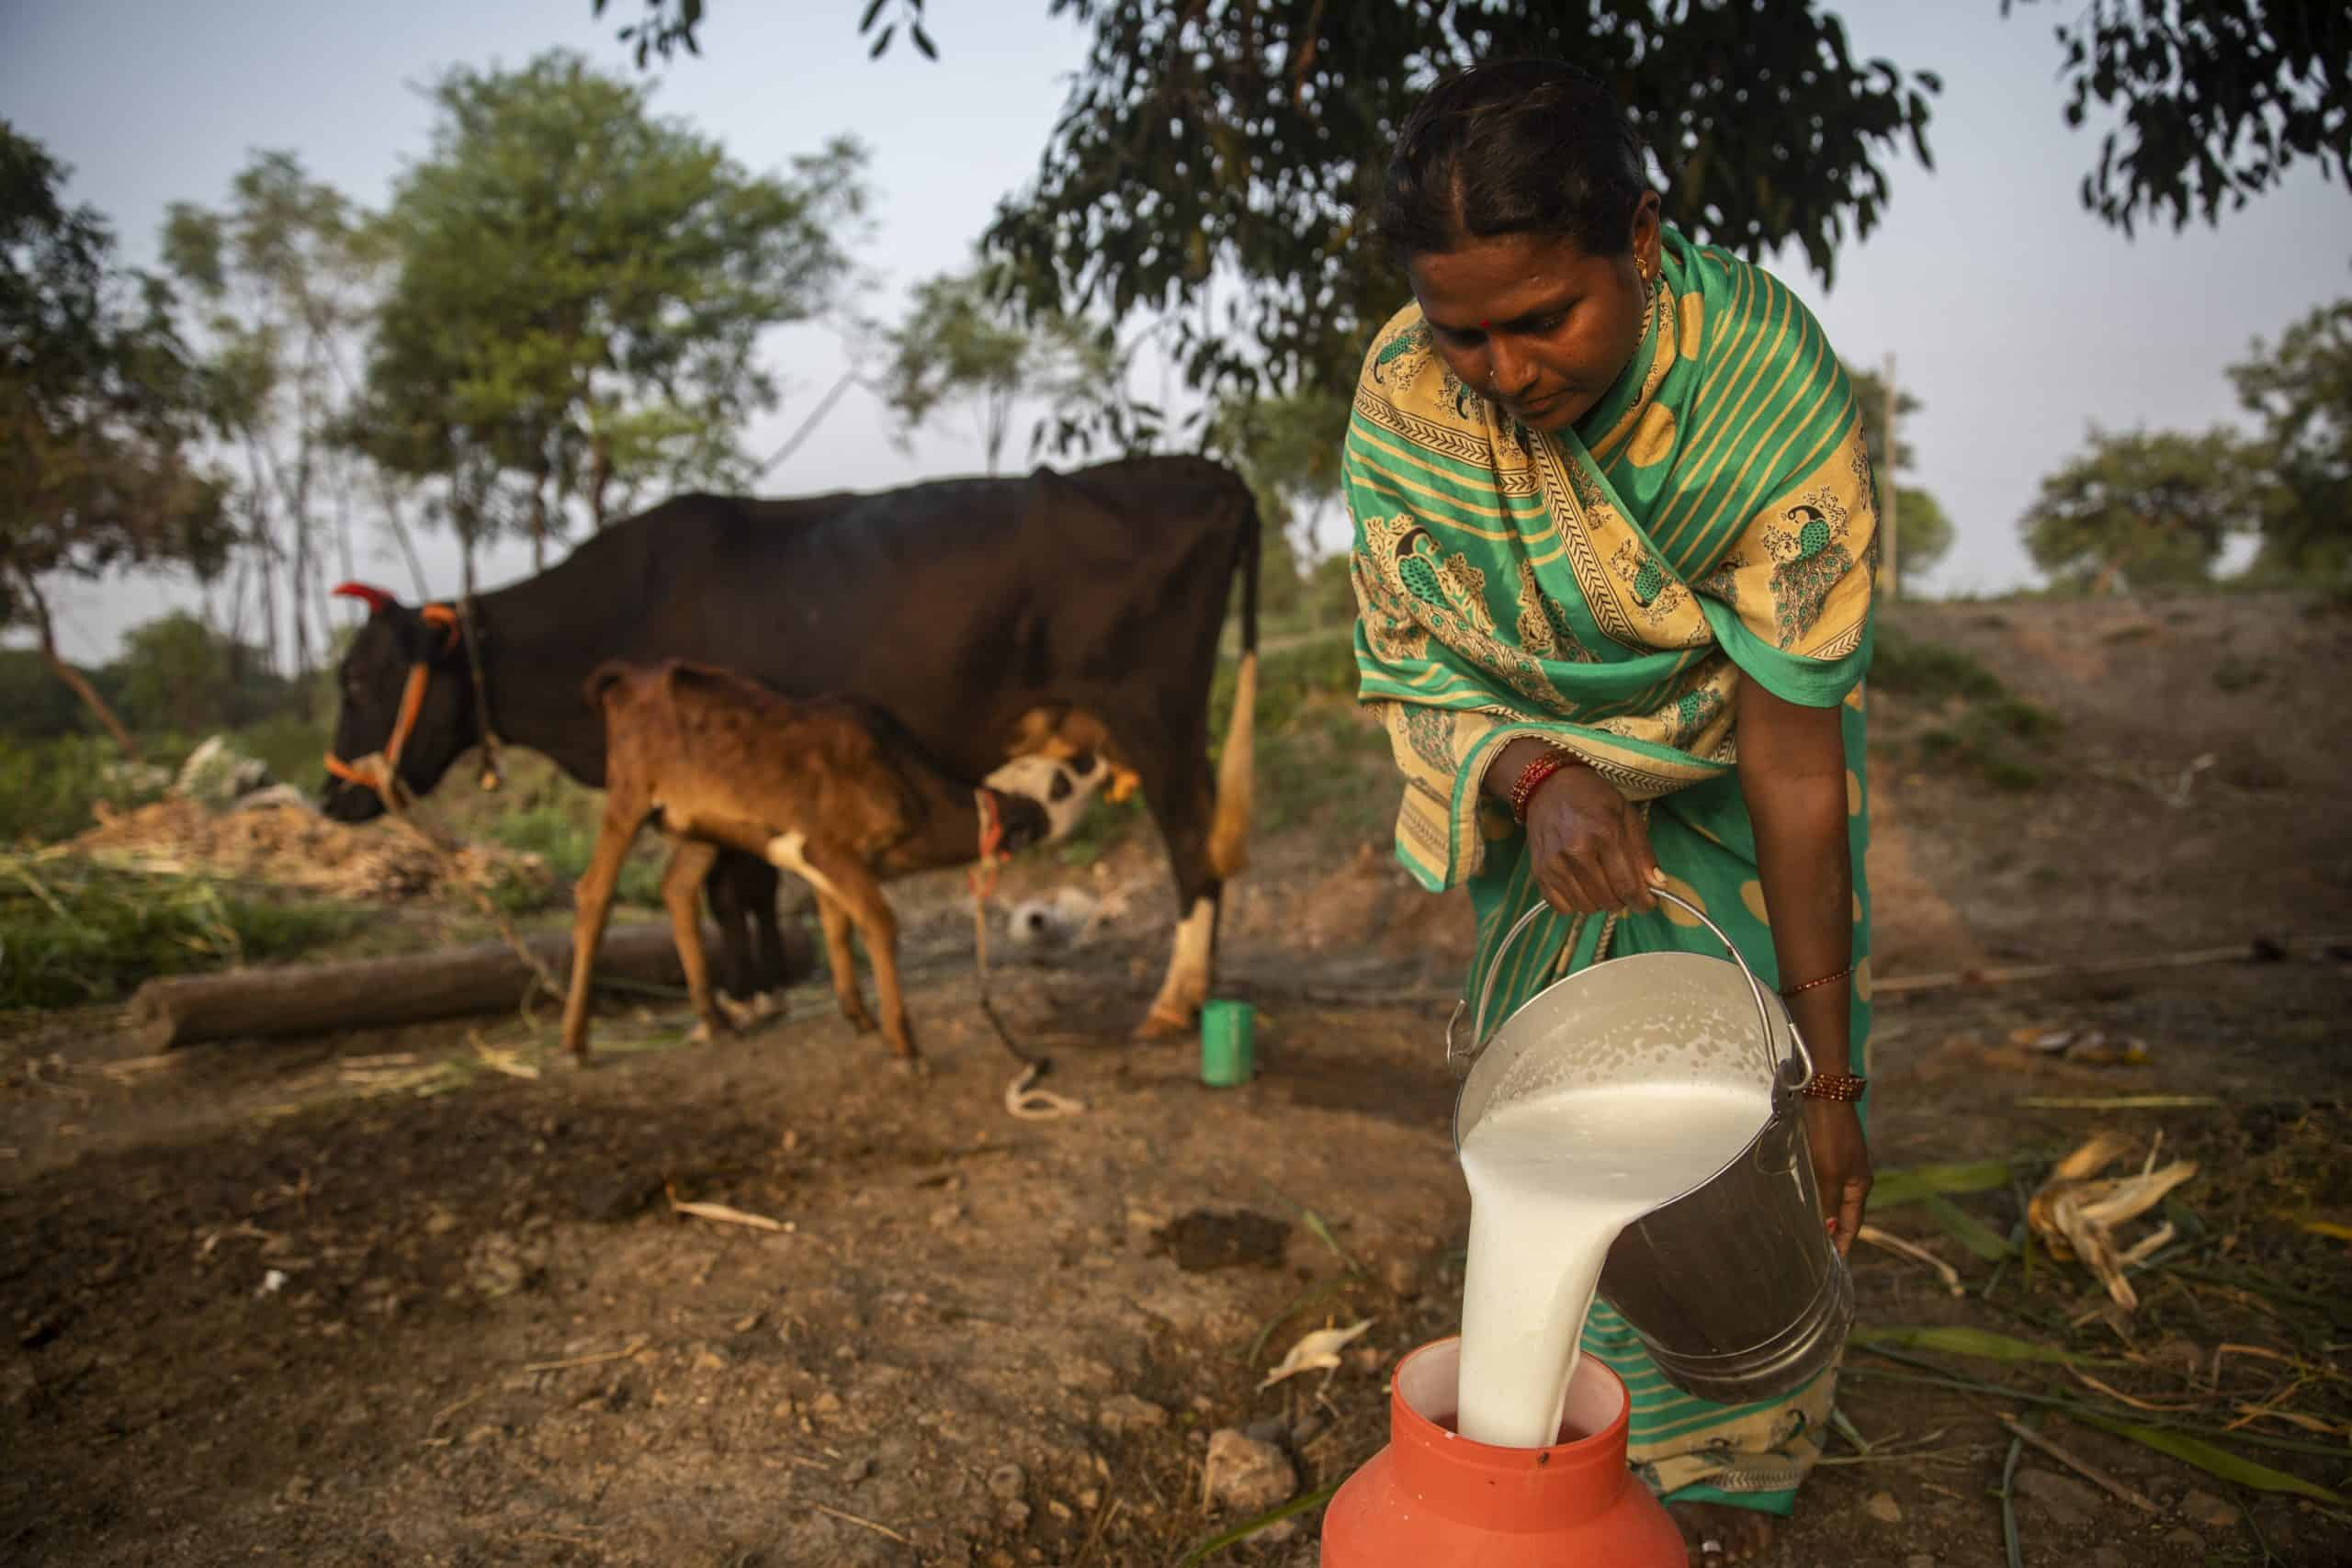 A woman pouring milk from a bucket